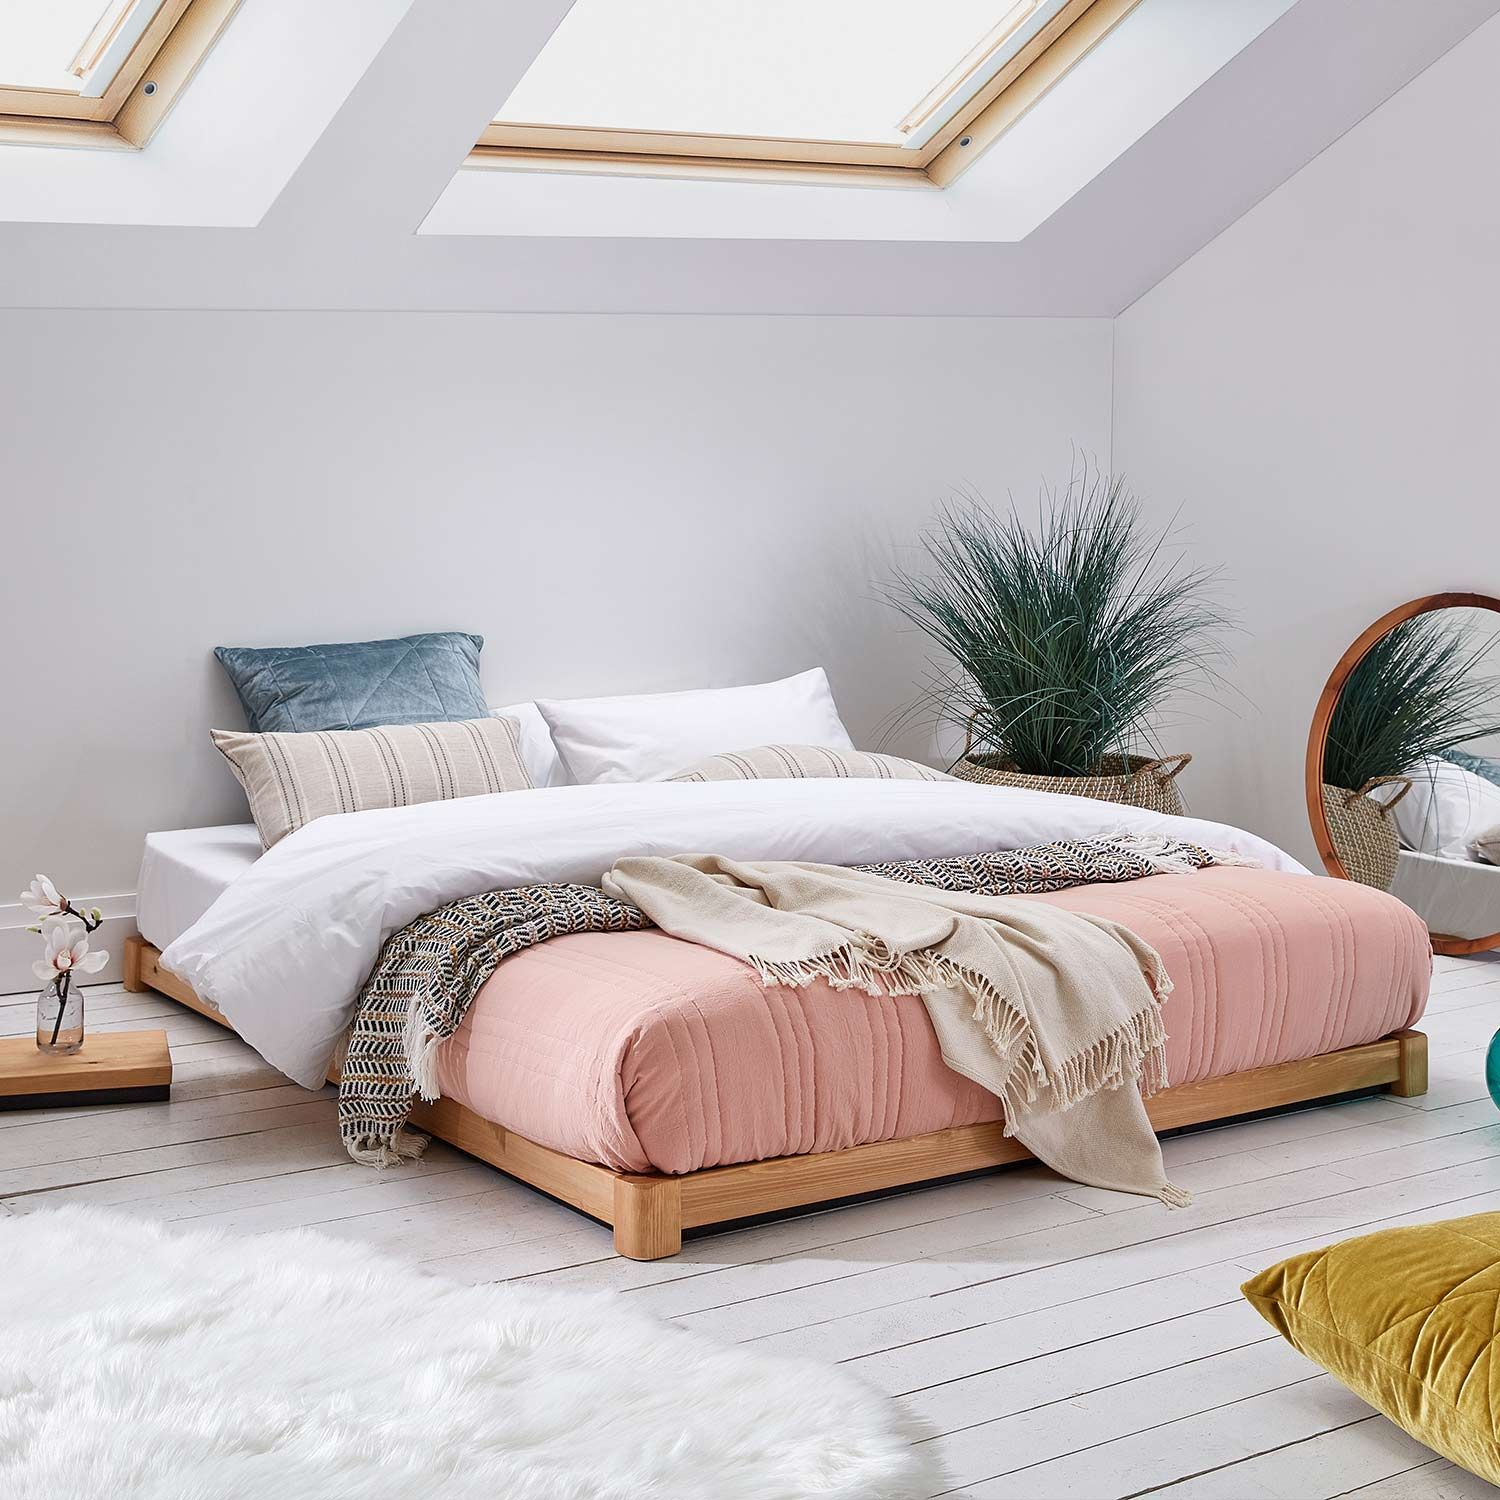 Attic Room Ideas Low bed frame, Low loft beds, Stylish